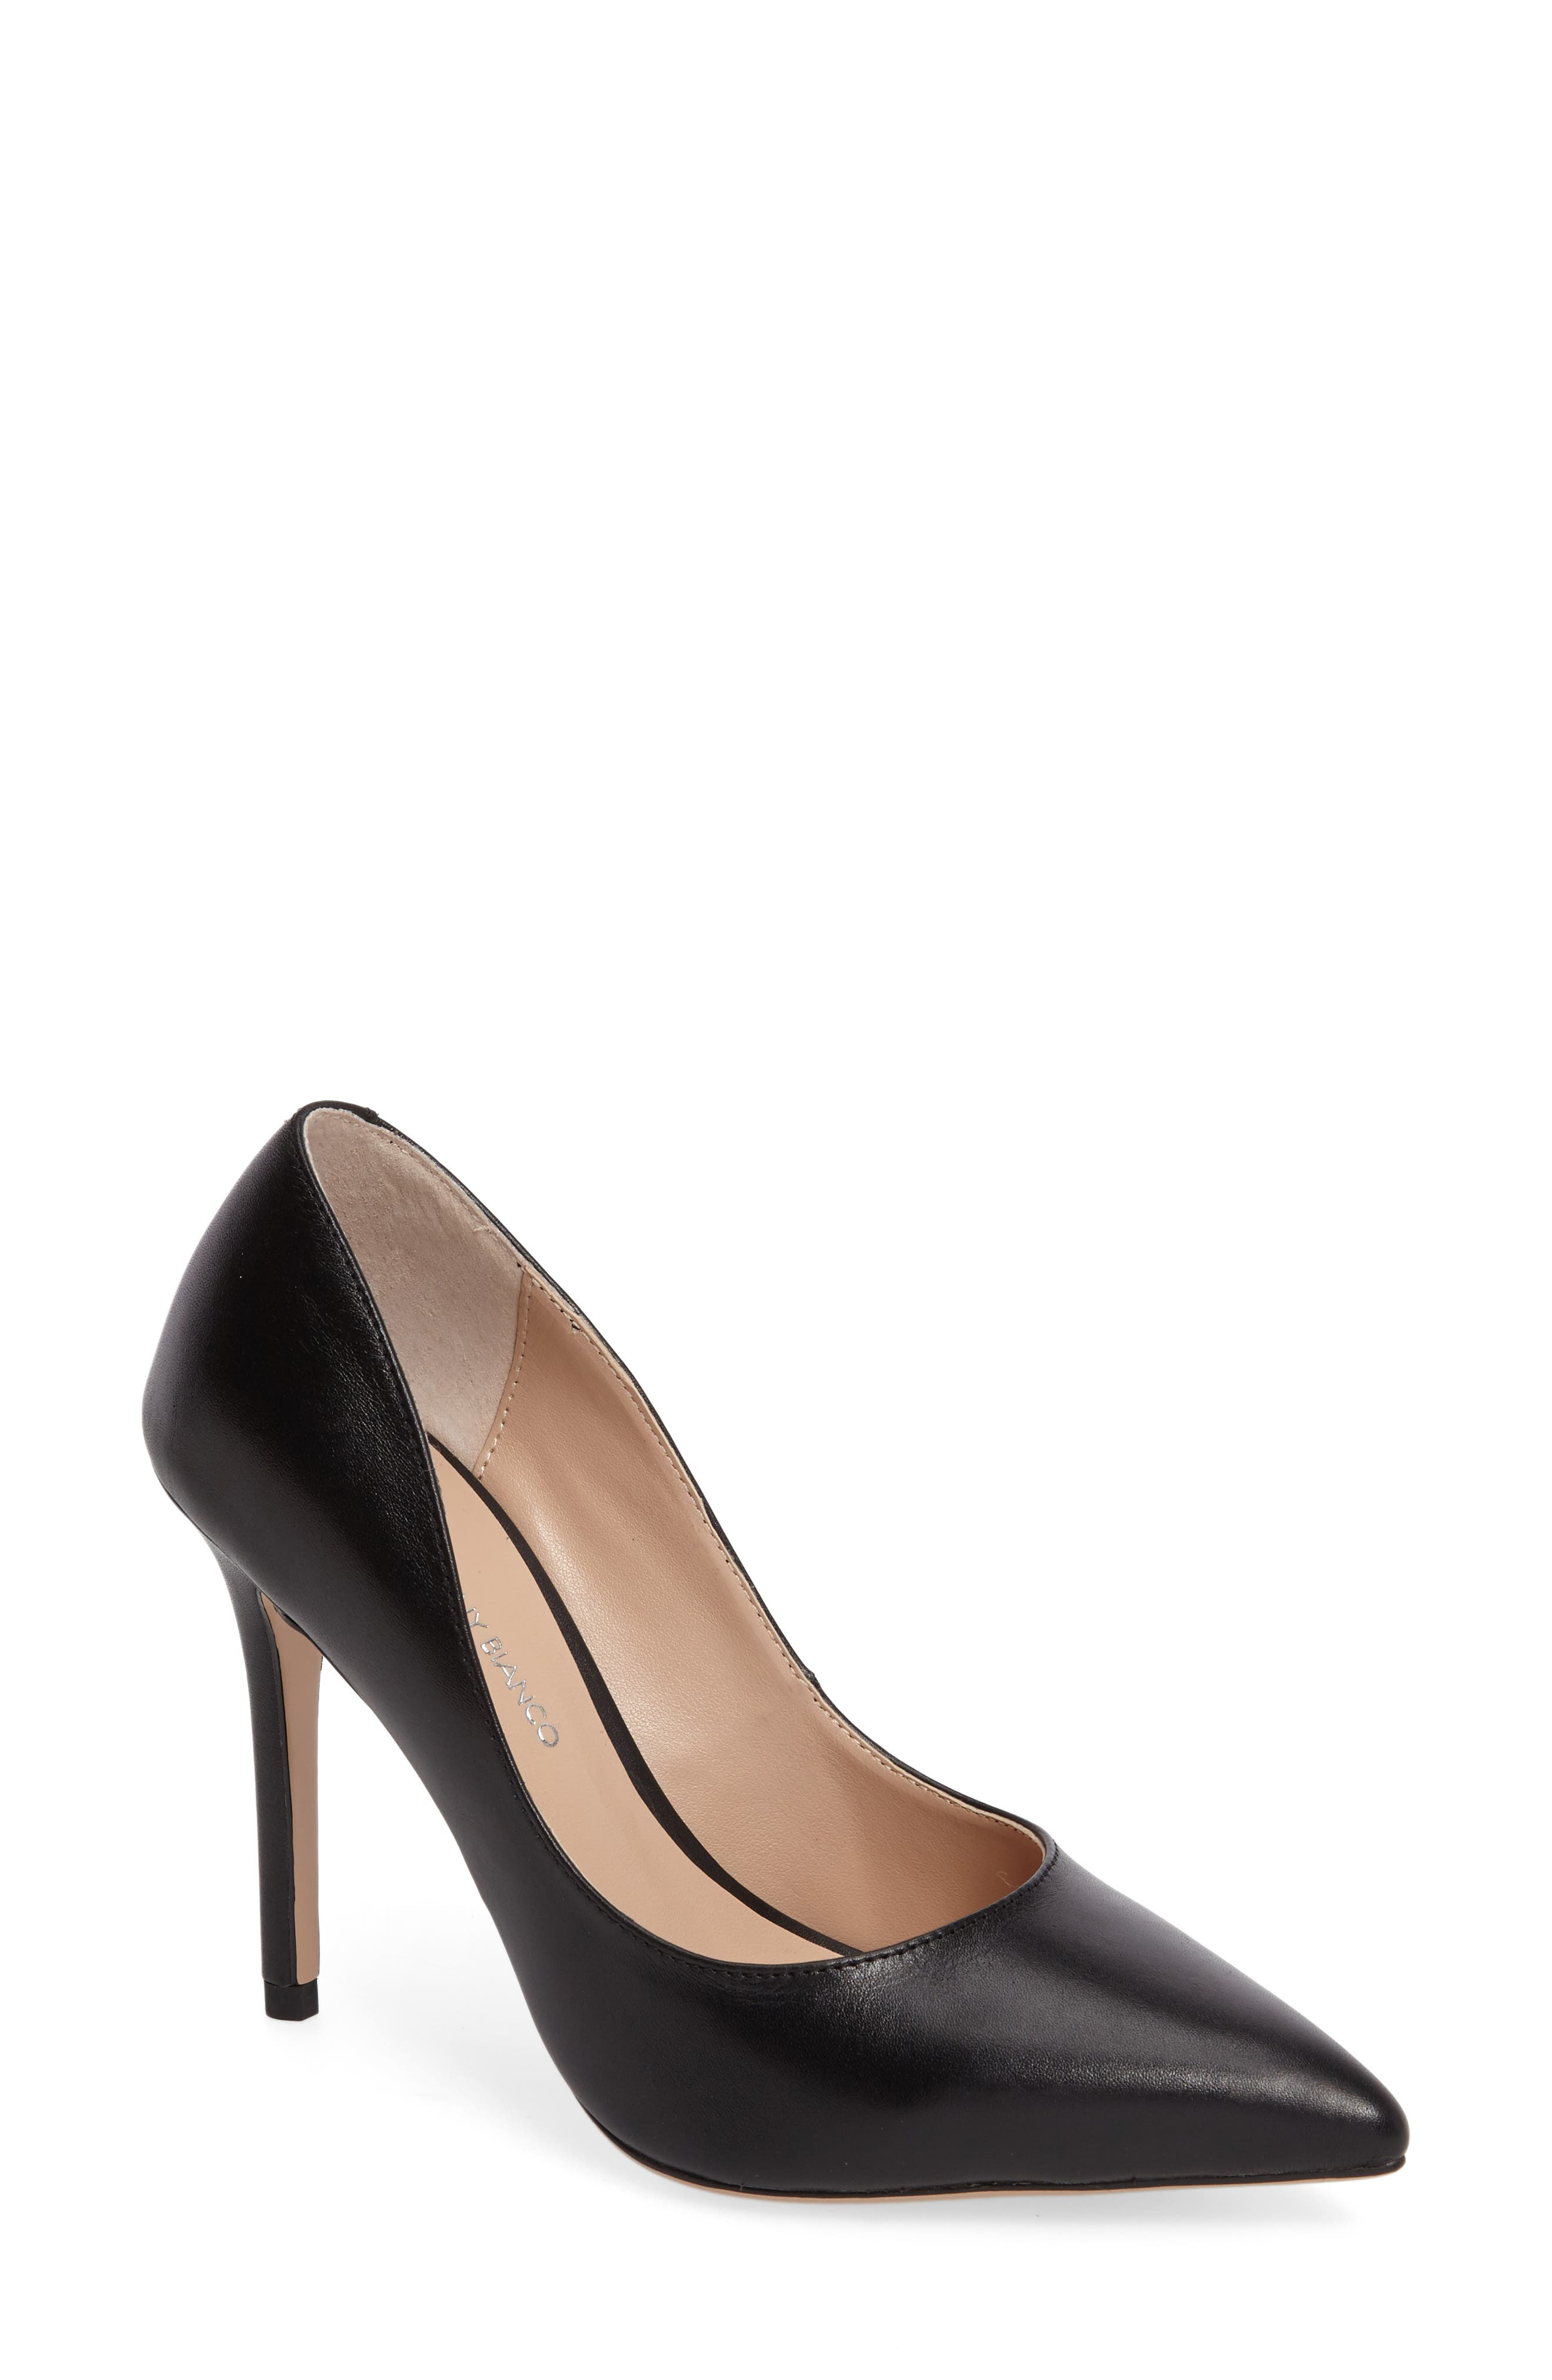 Alternate Image 1 Selected - Tony Bianco Dova Pump (Women)